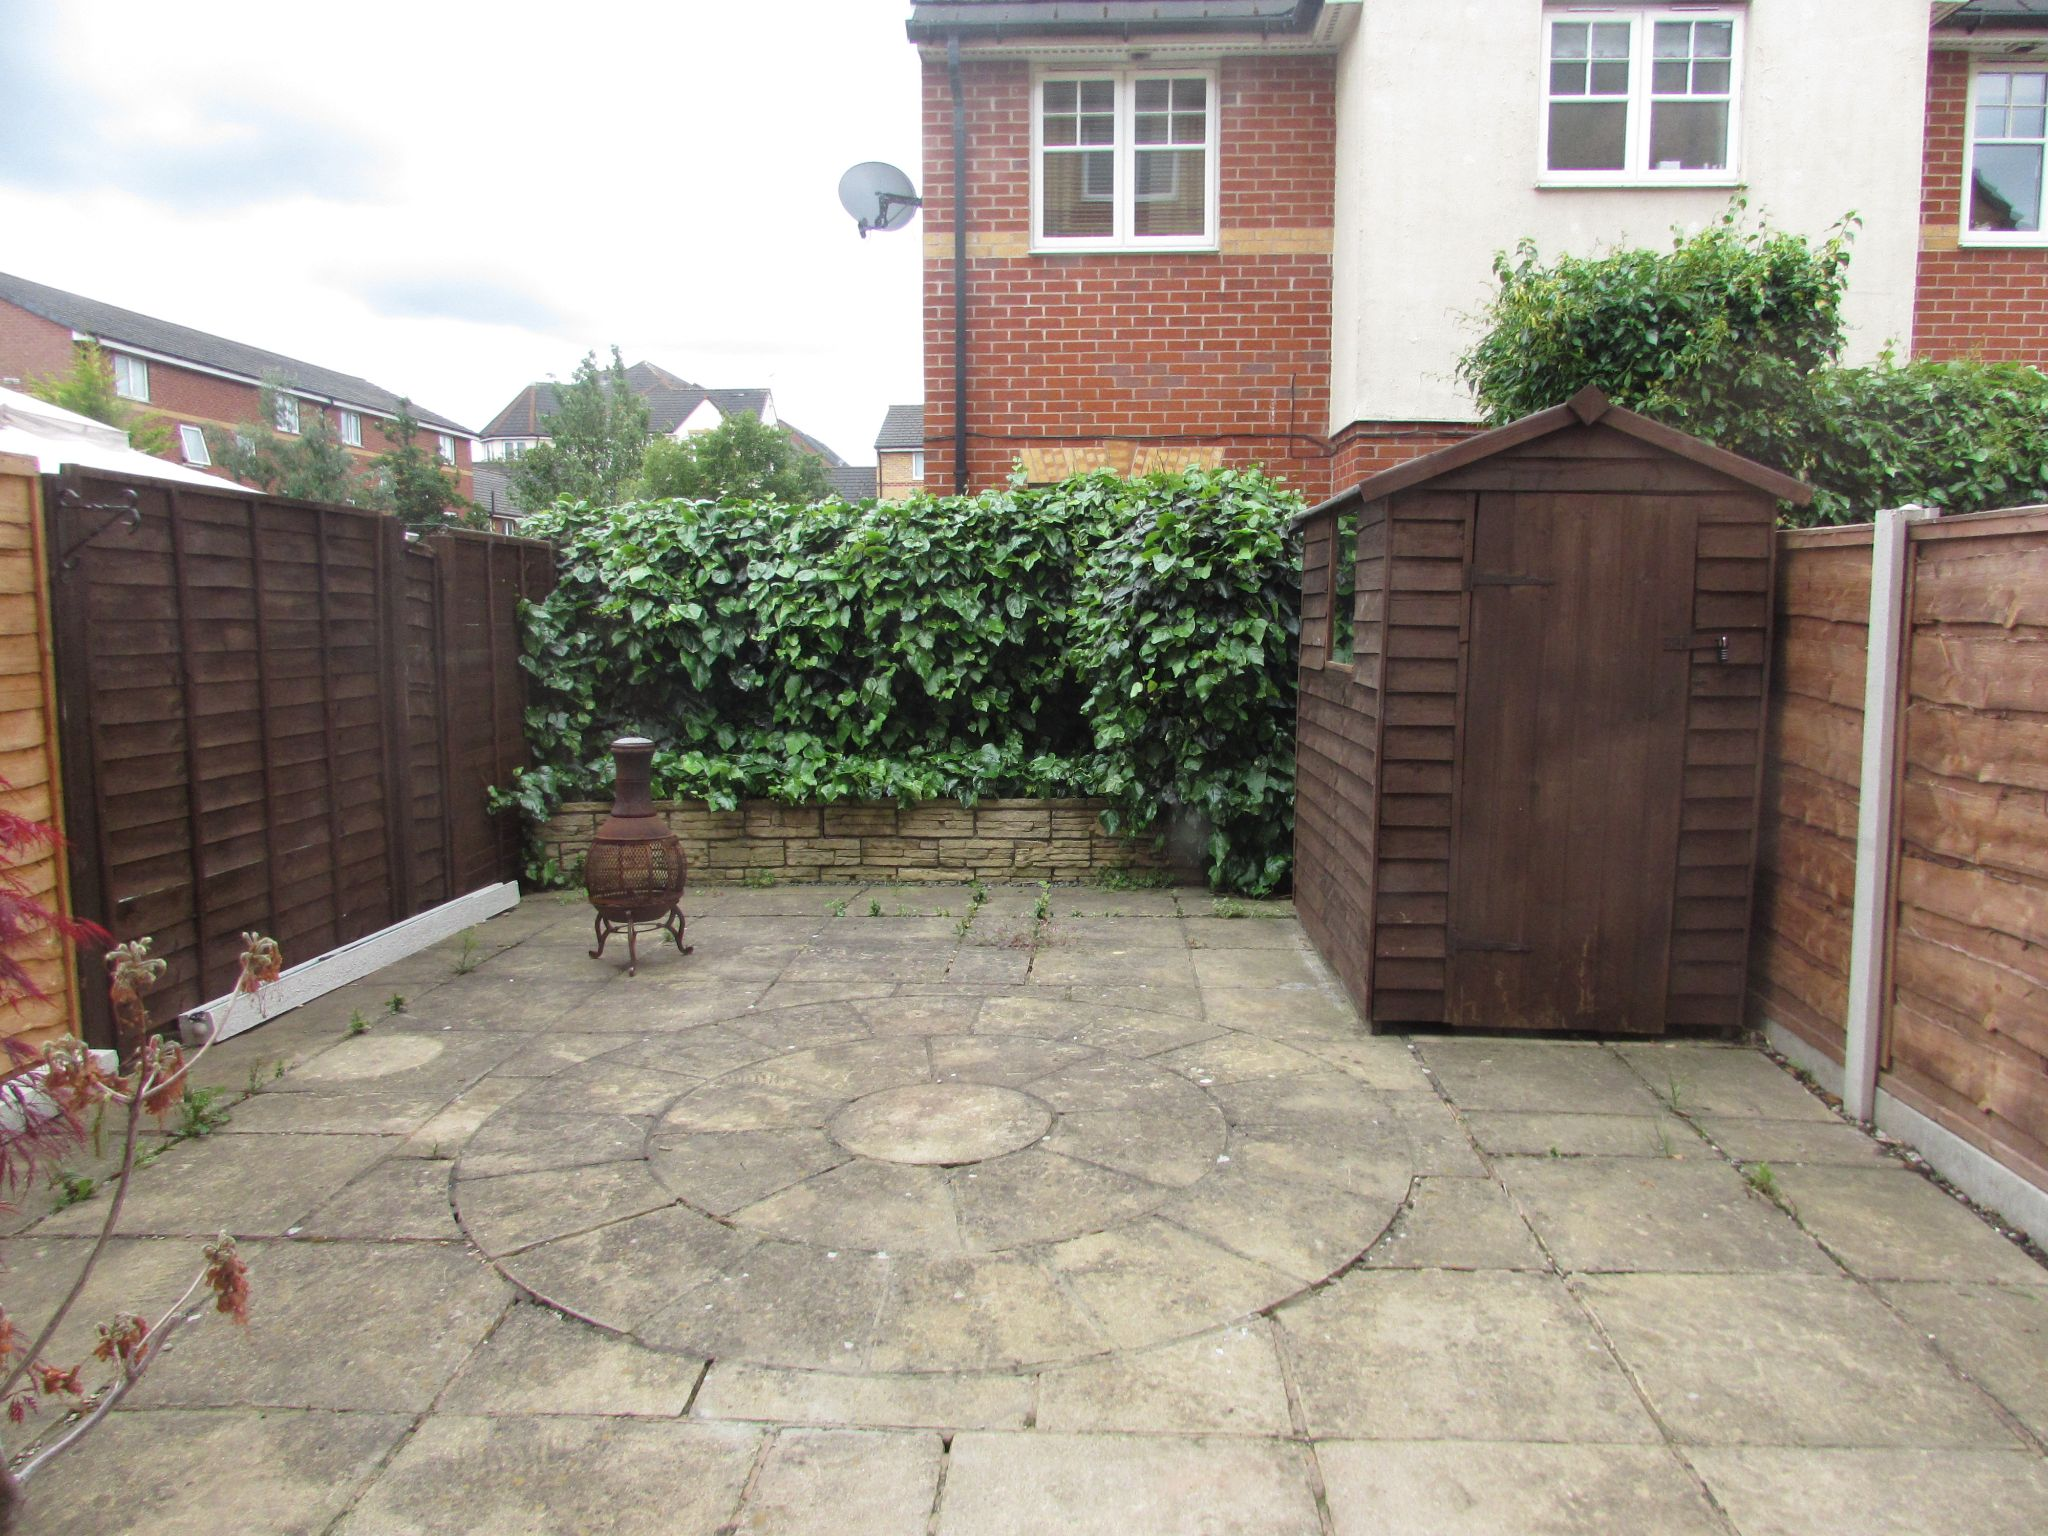 1 Bedroom Mid Terraced House To Rent - Rear